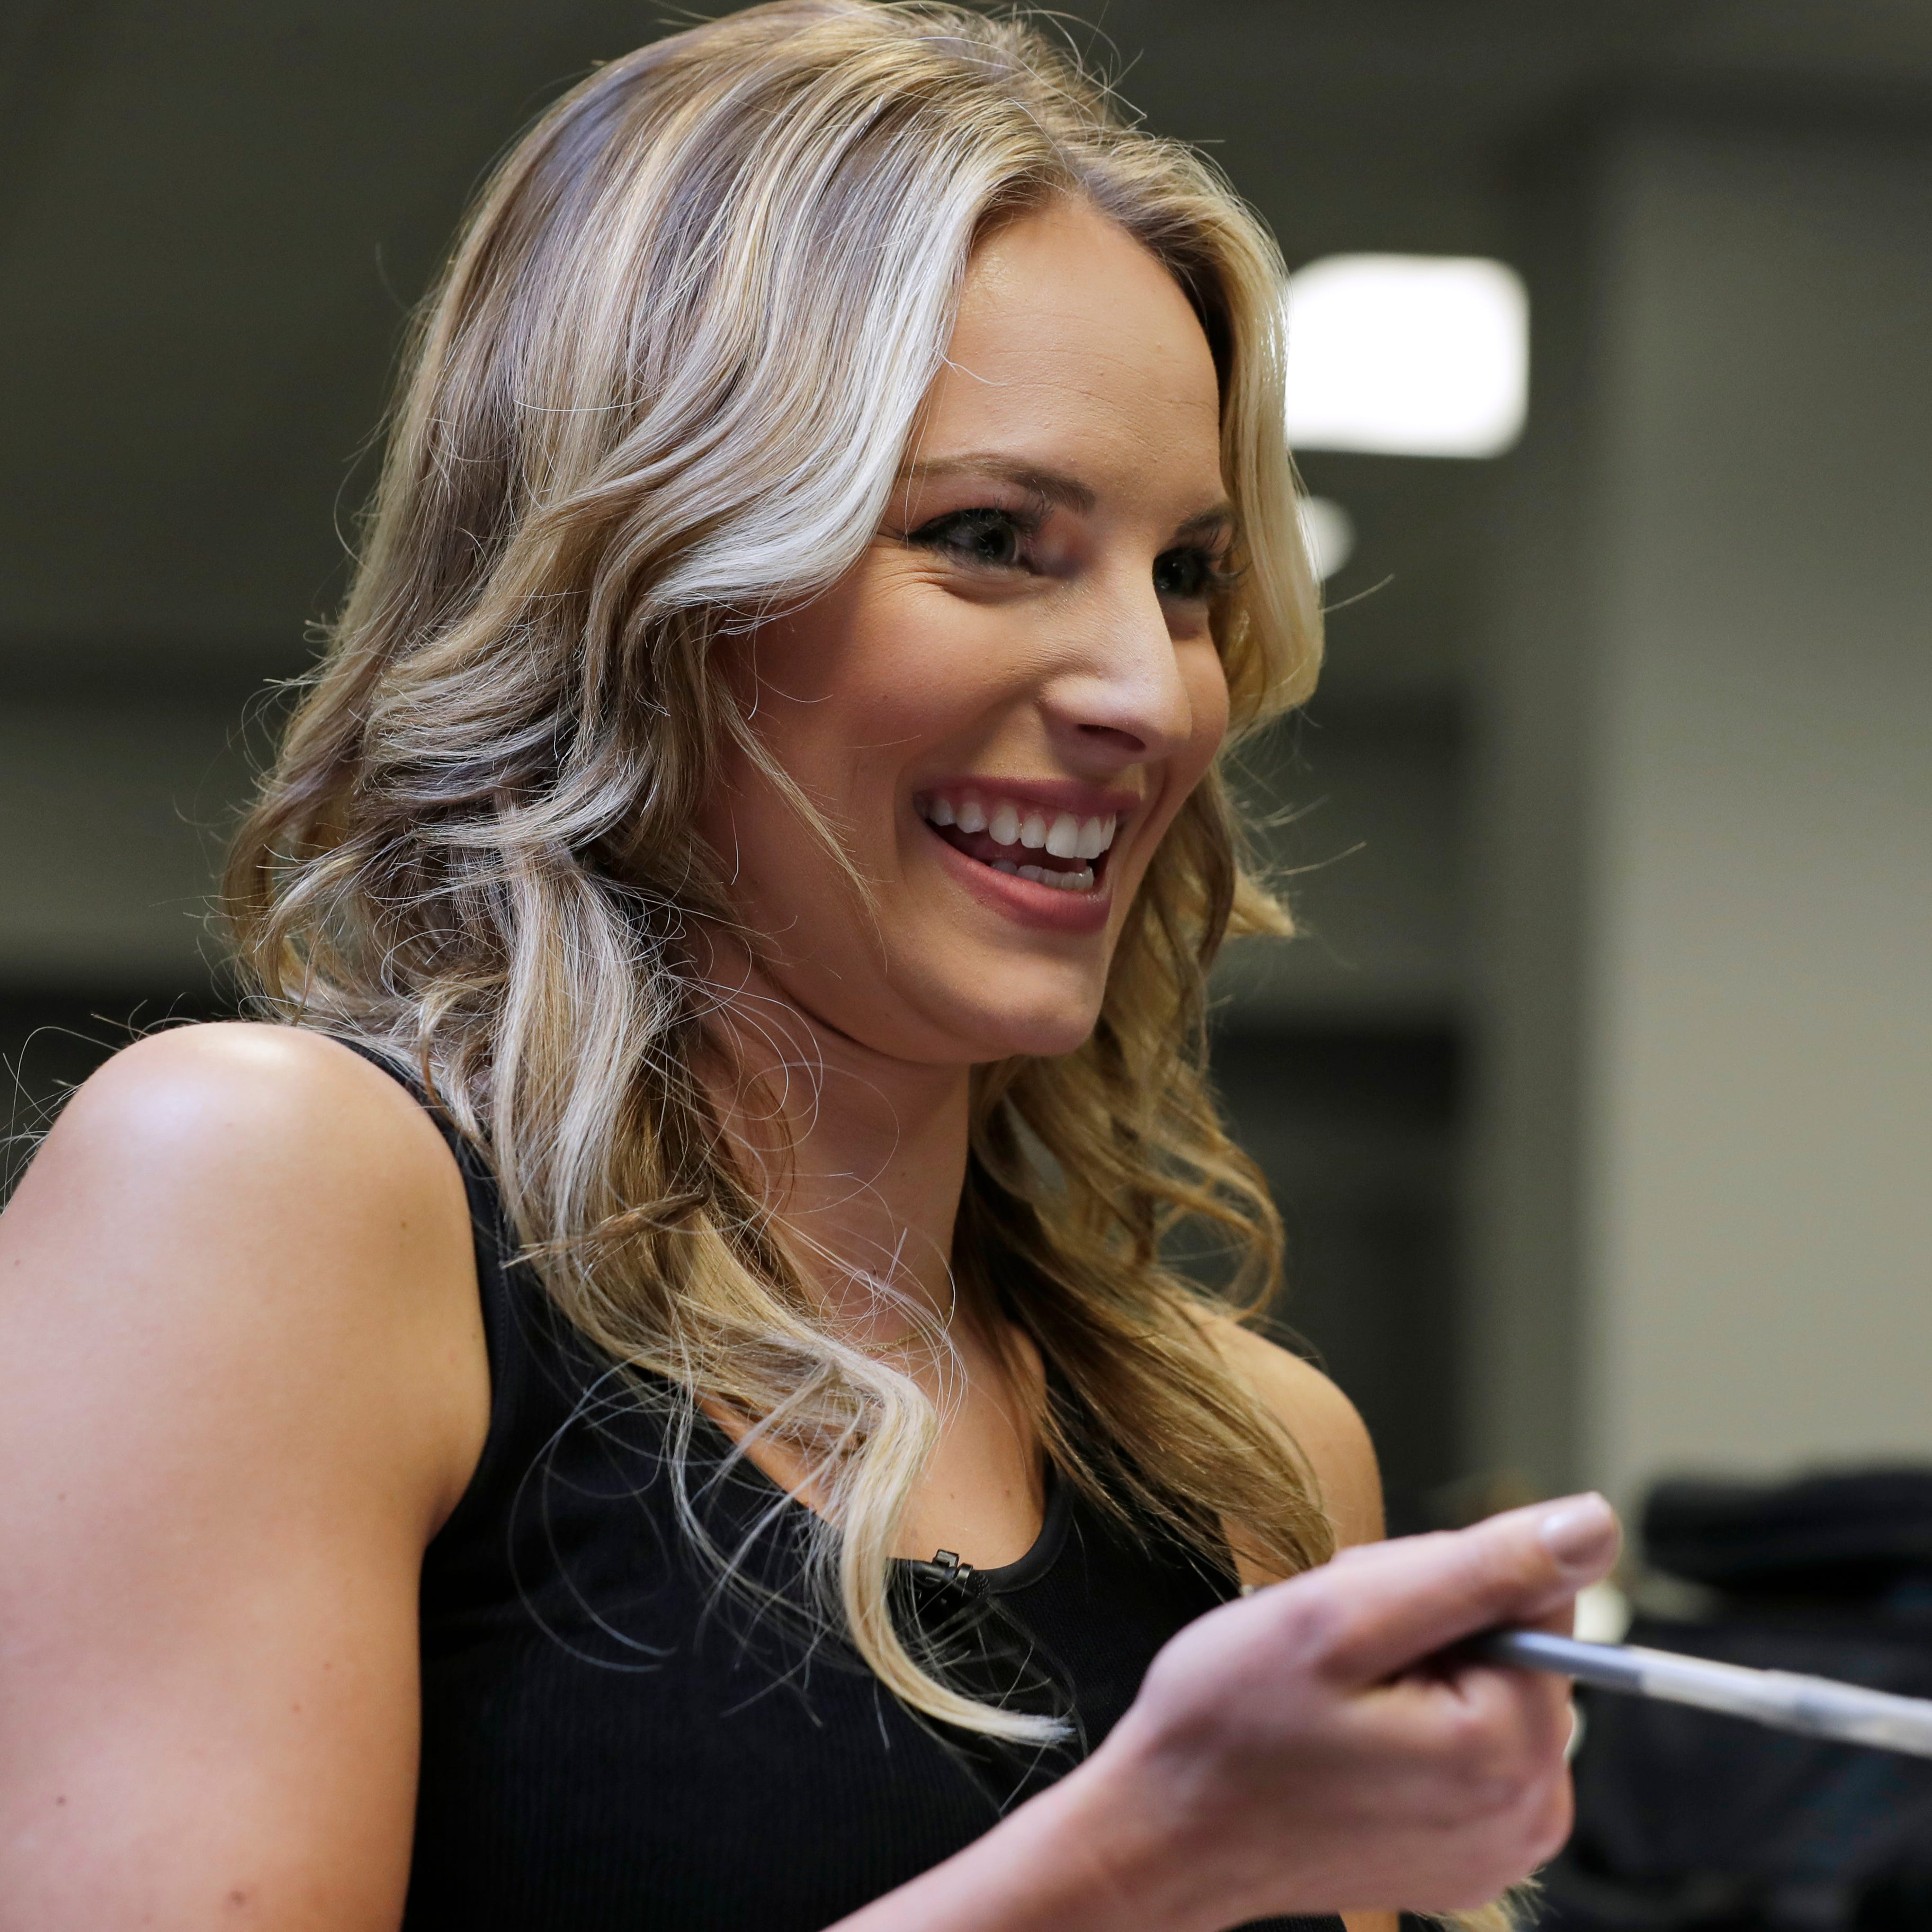 Bucks broadcaster Katie George blends athletic background, broadcast chops and national ambitions